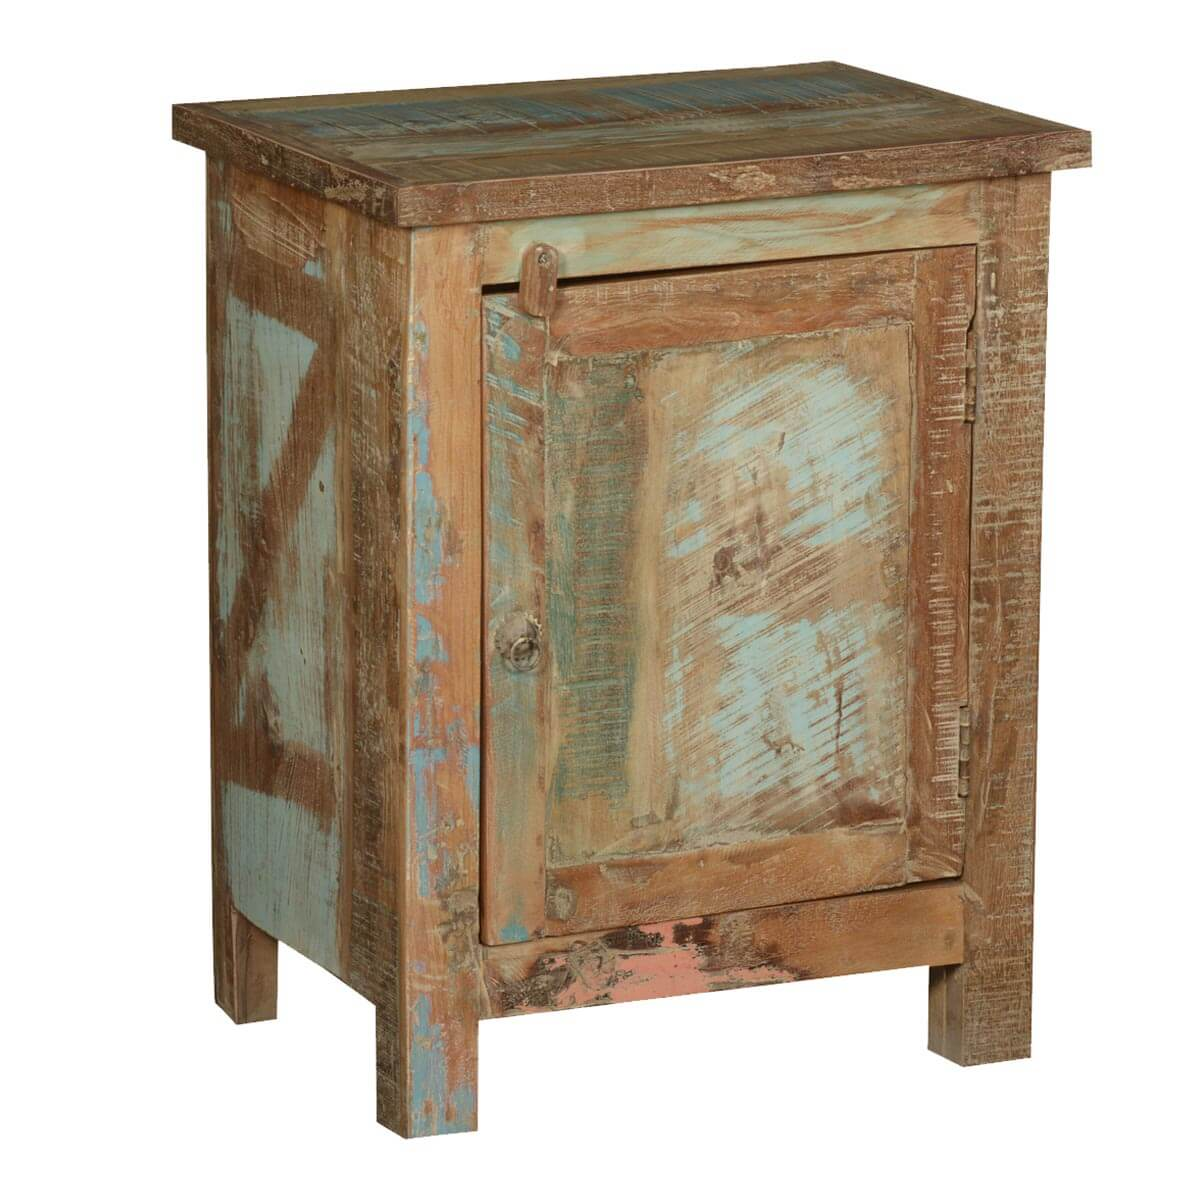 Frontier rustic reclaimed wood nightstand end table cabinet for Rustic wood accent tables